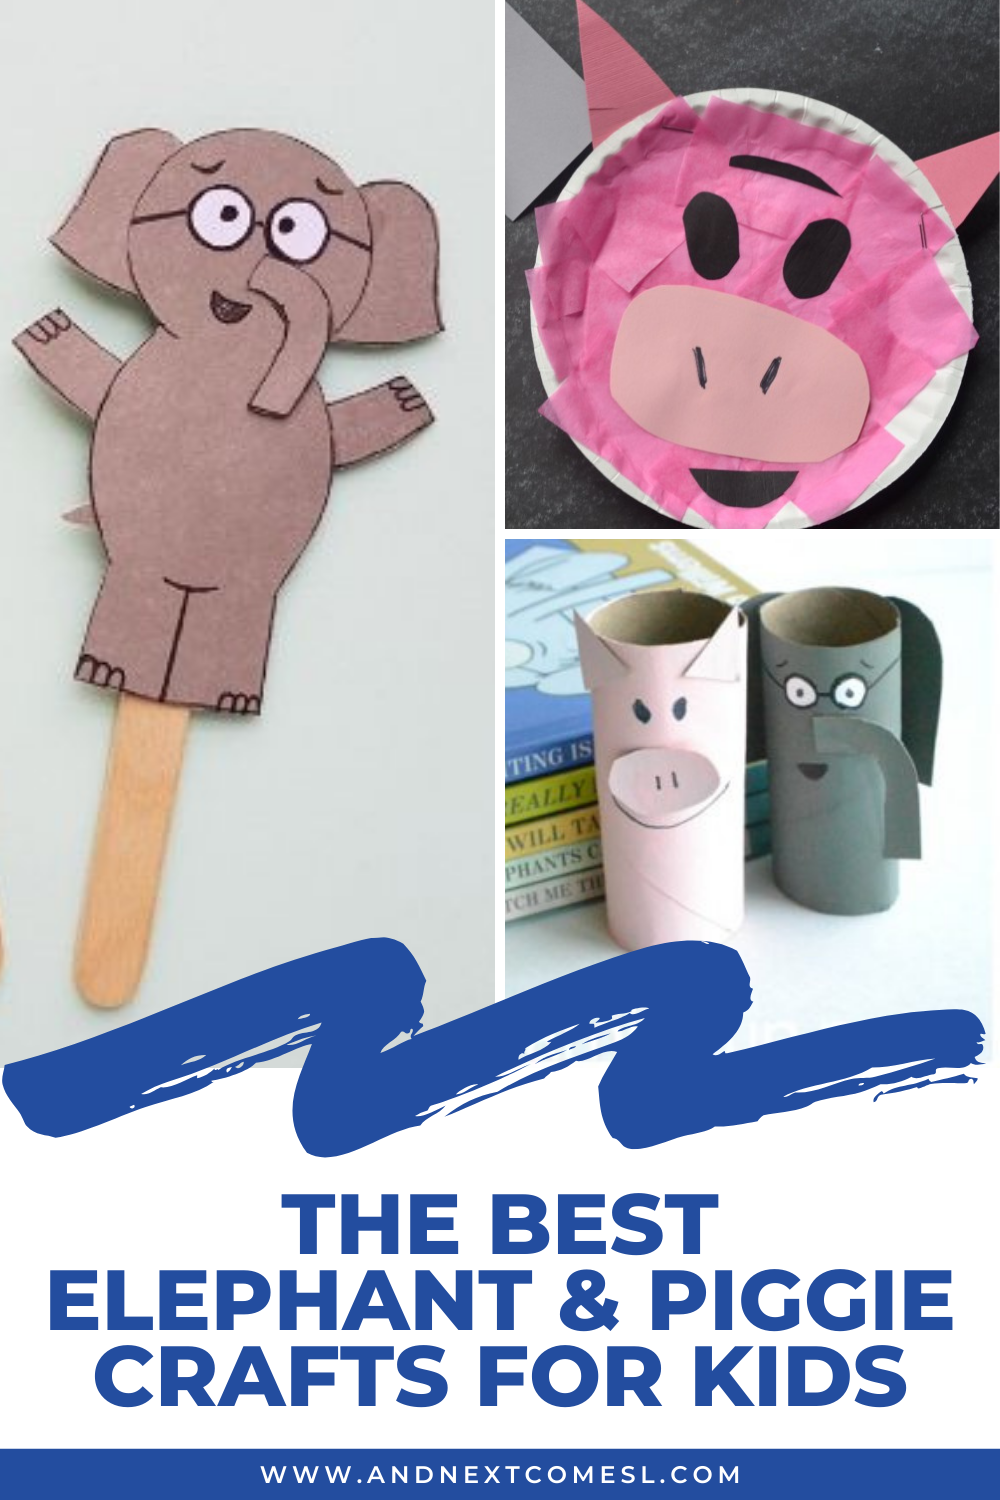 Awesome Elephant and Piggie crafts for kids inspired by Mo Willems' popular book series - you're going to love these ideas!